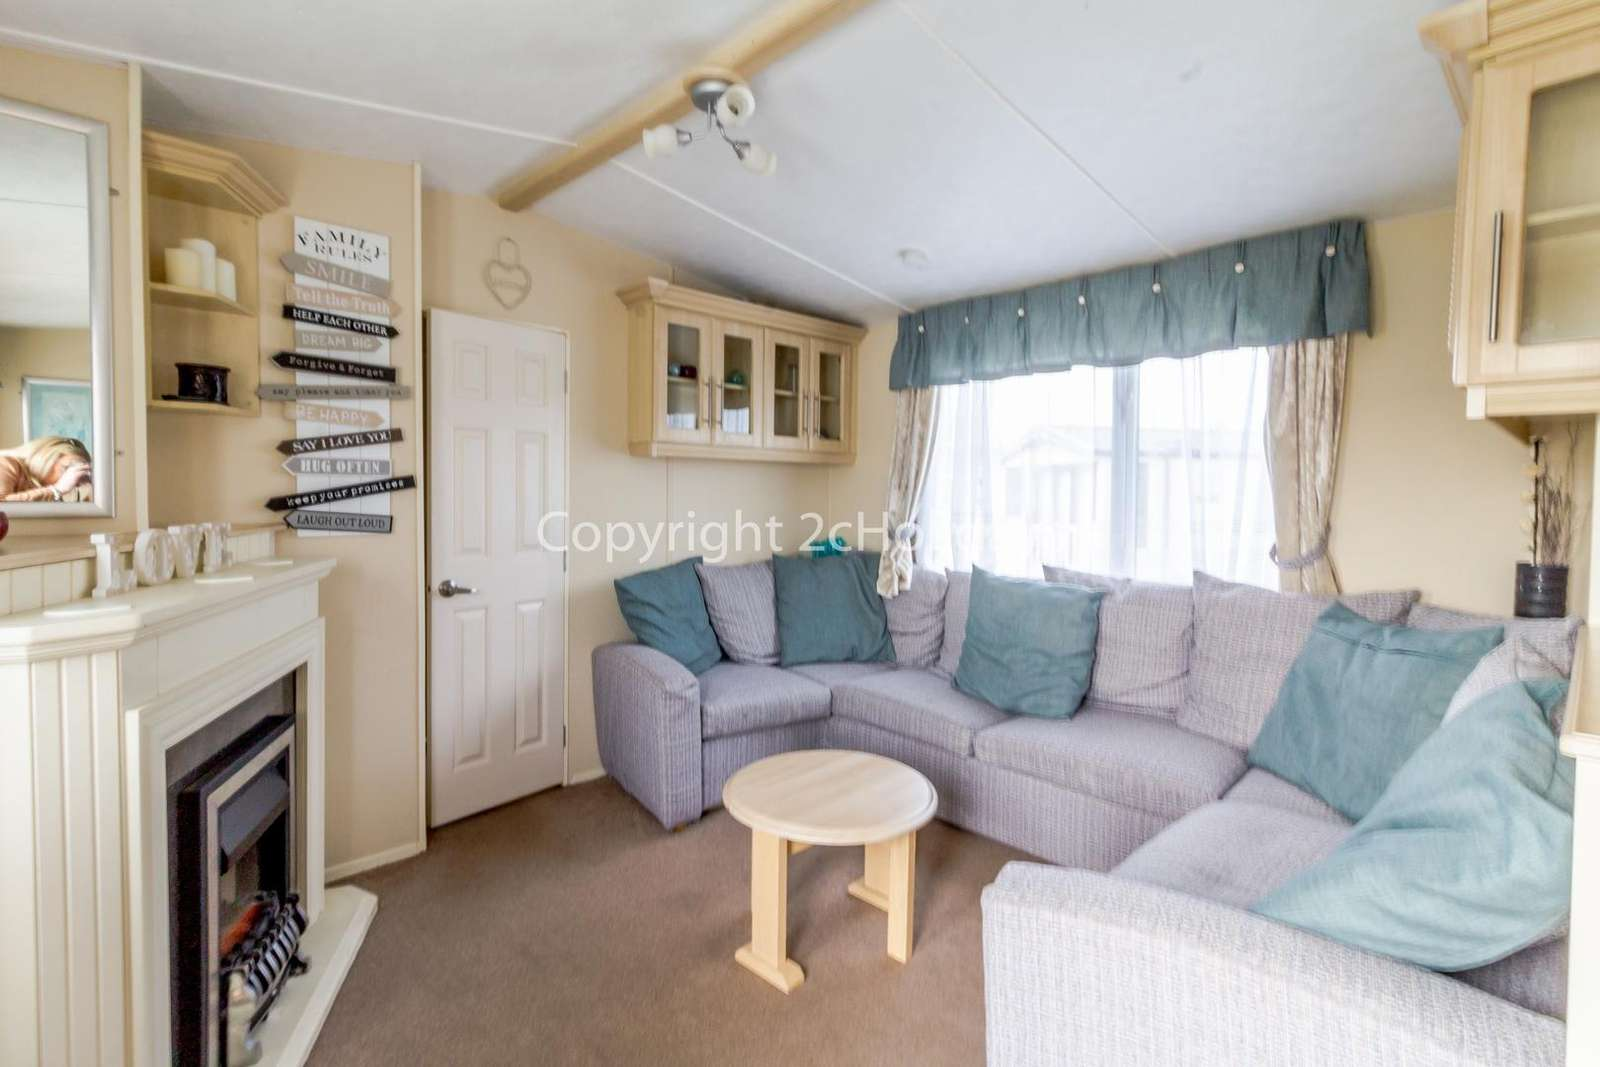 Spacious and homely lounge, a great place for families